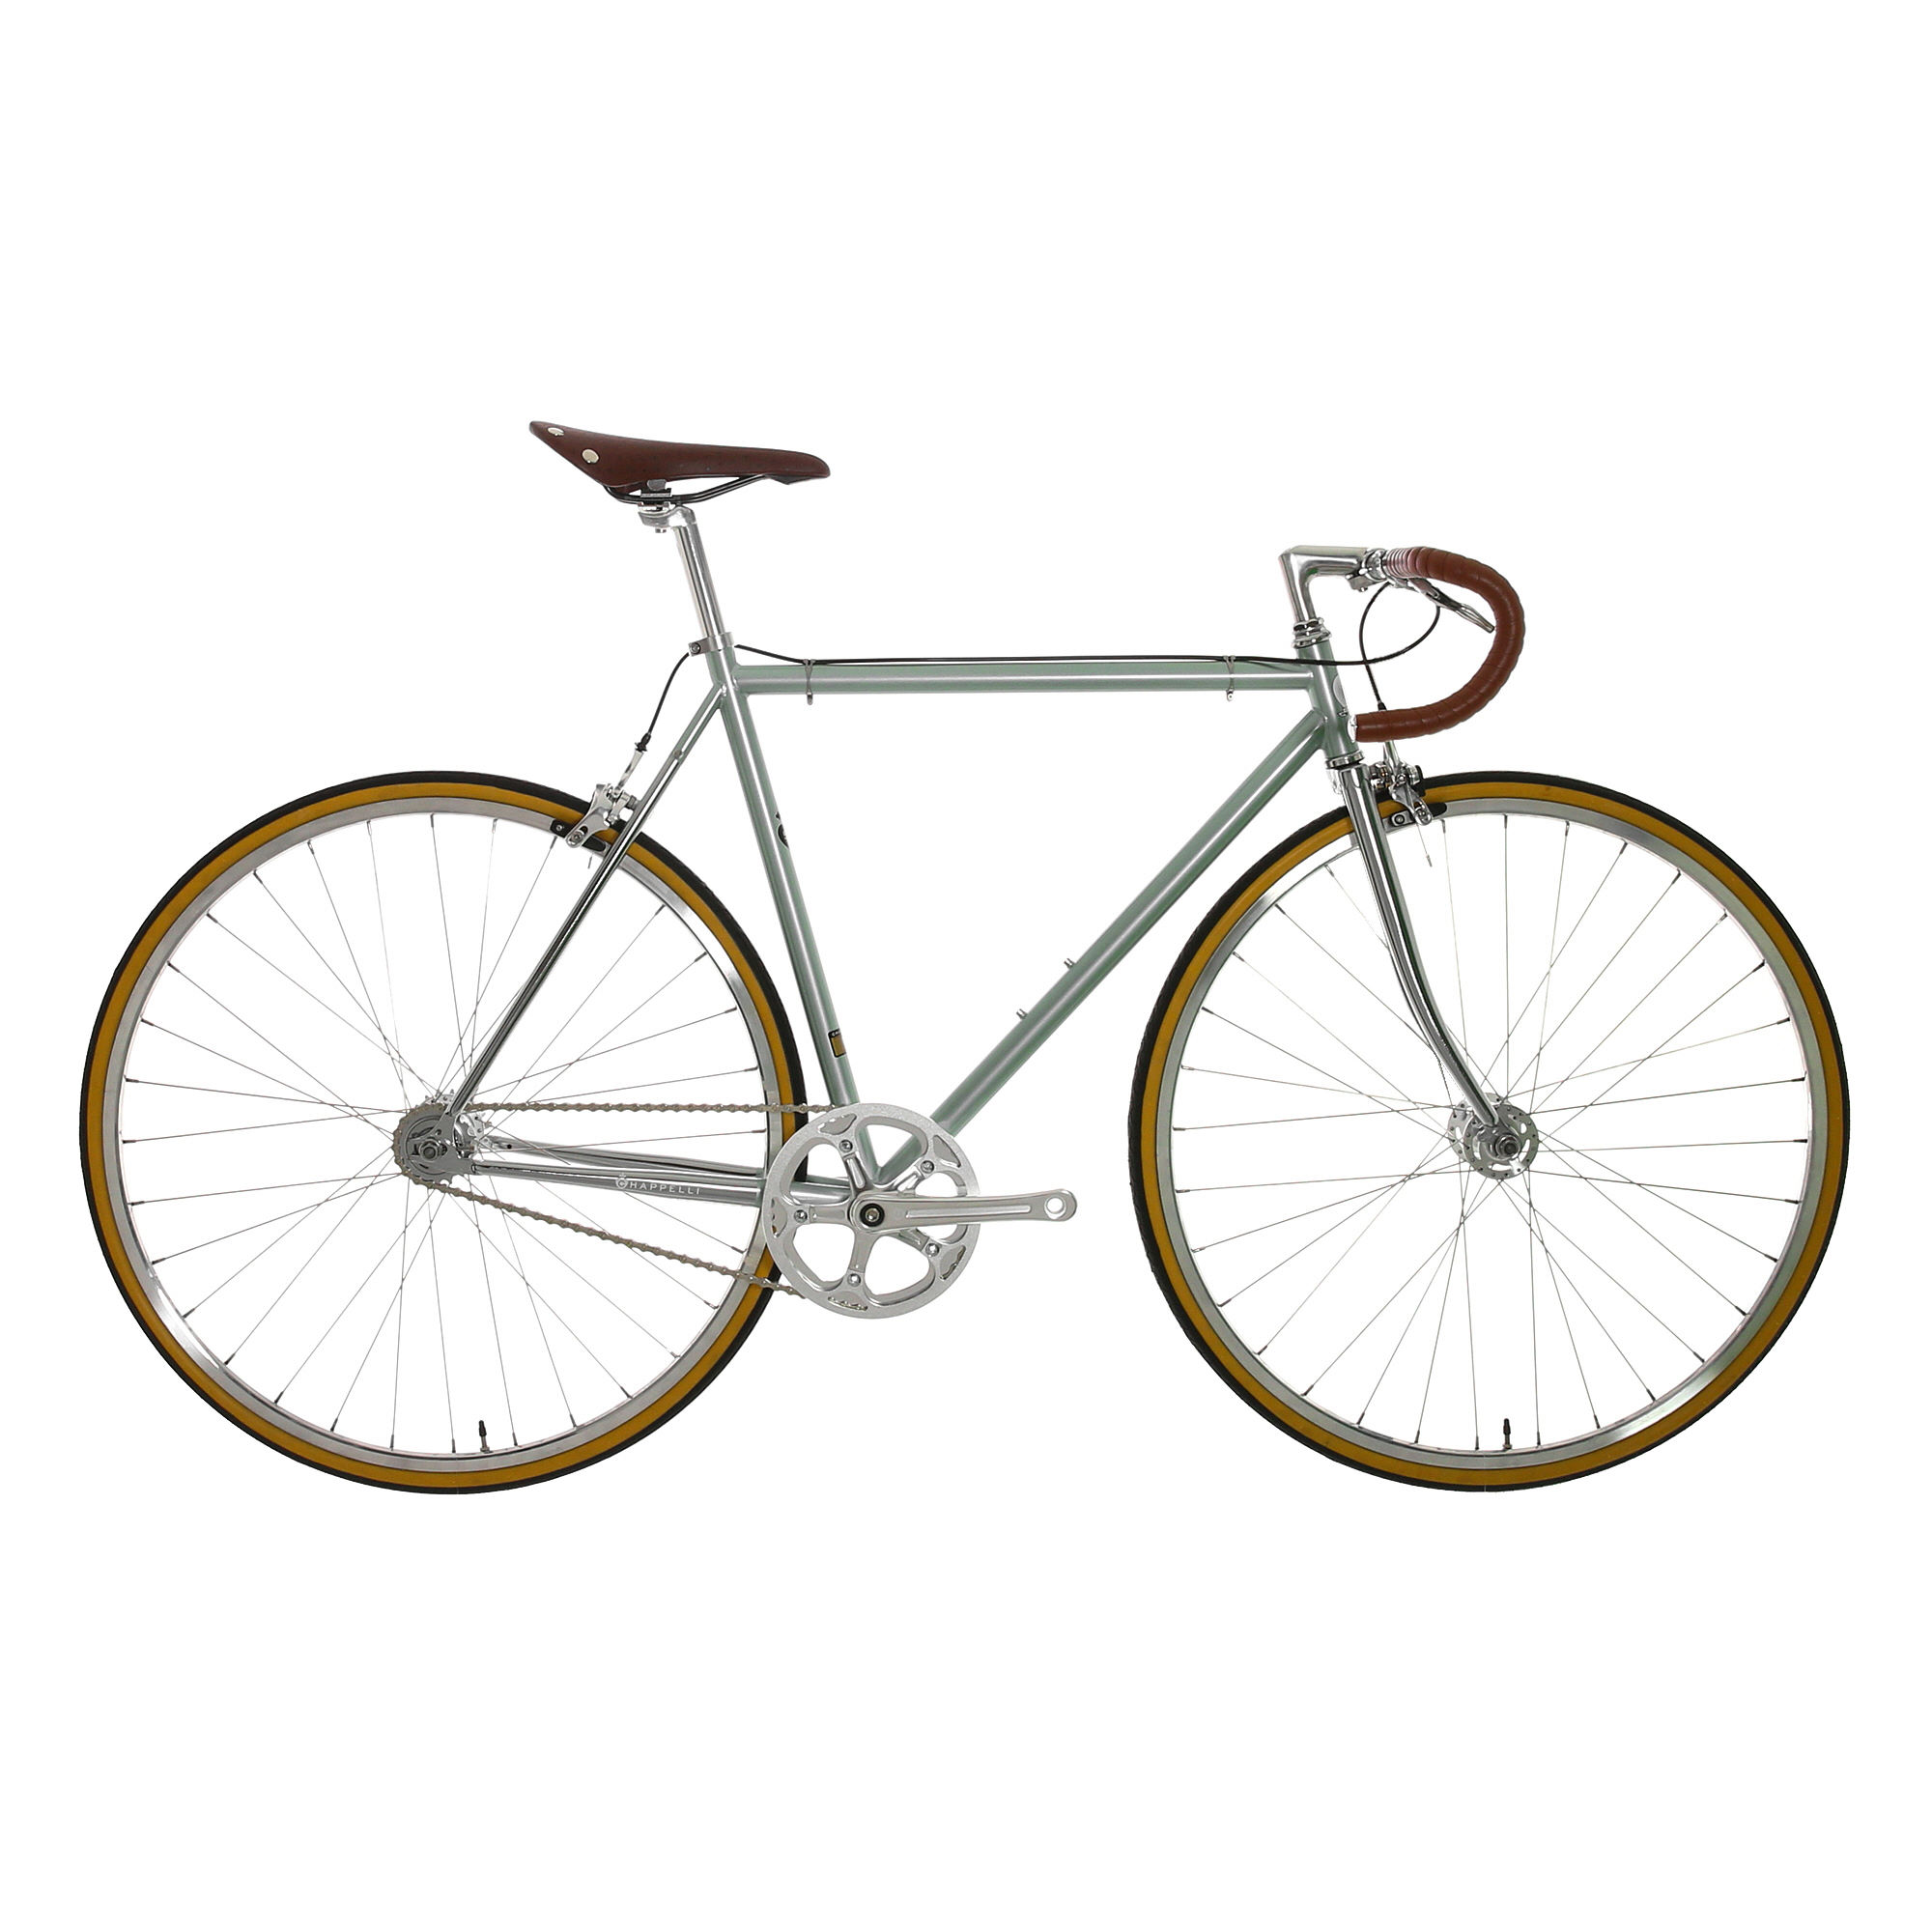 Fixie Fever - Online Shop f r Singlespeed und Fixies